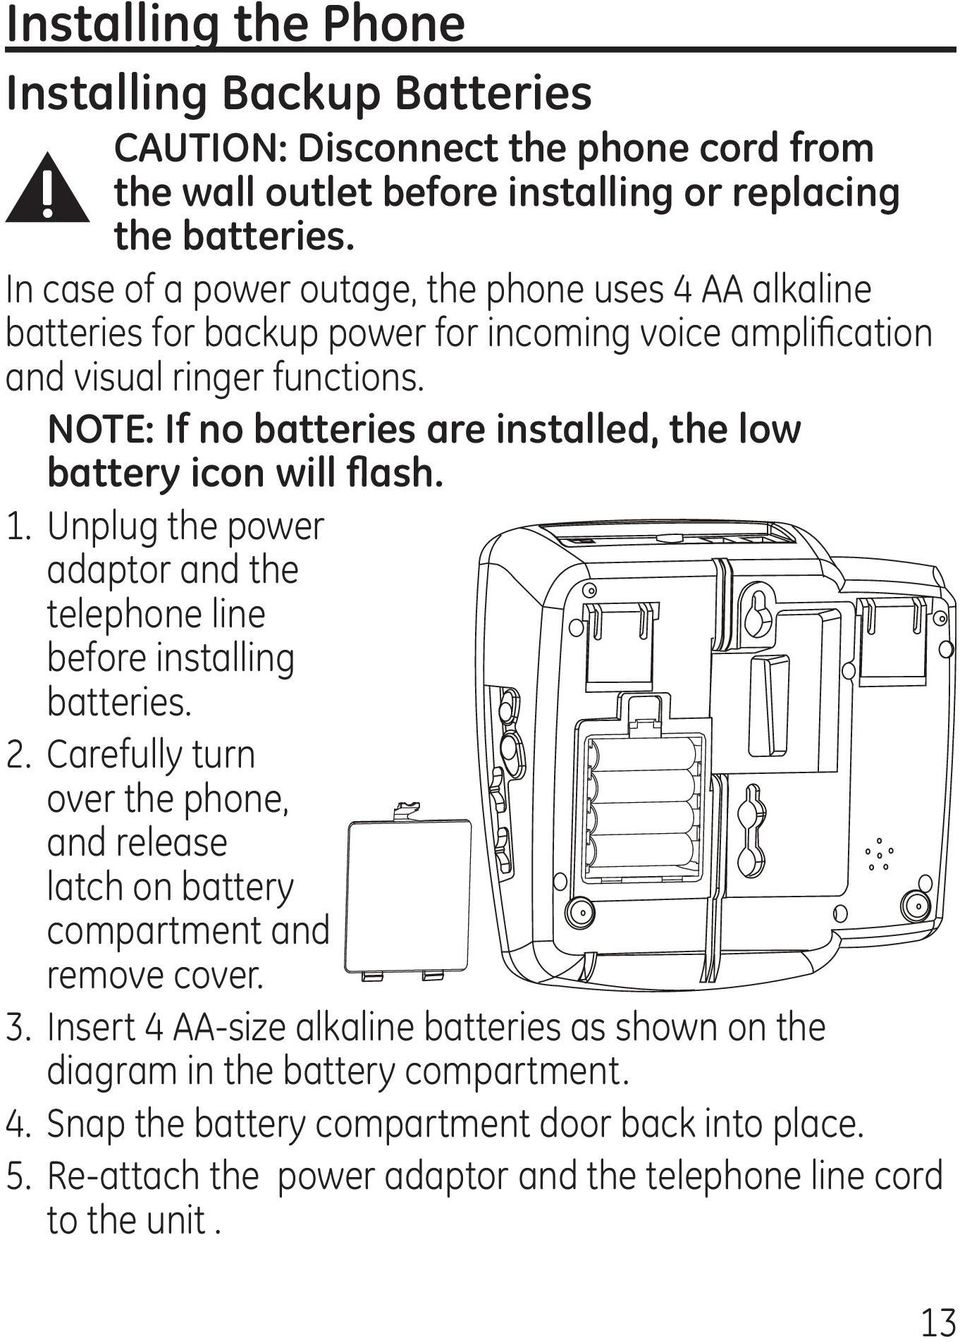 NOTE: If no batteries are installed, the low battery icon will flash. 1. Unplug the power adaptor and the telephone line before installing batteries. 2.